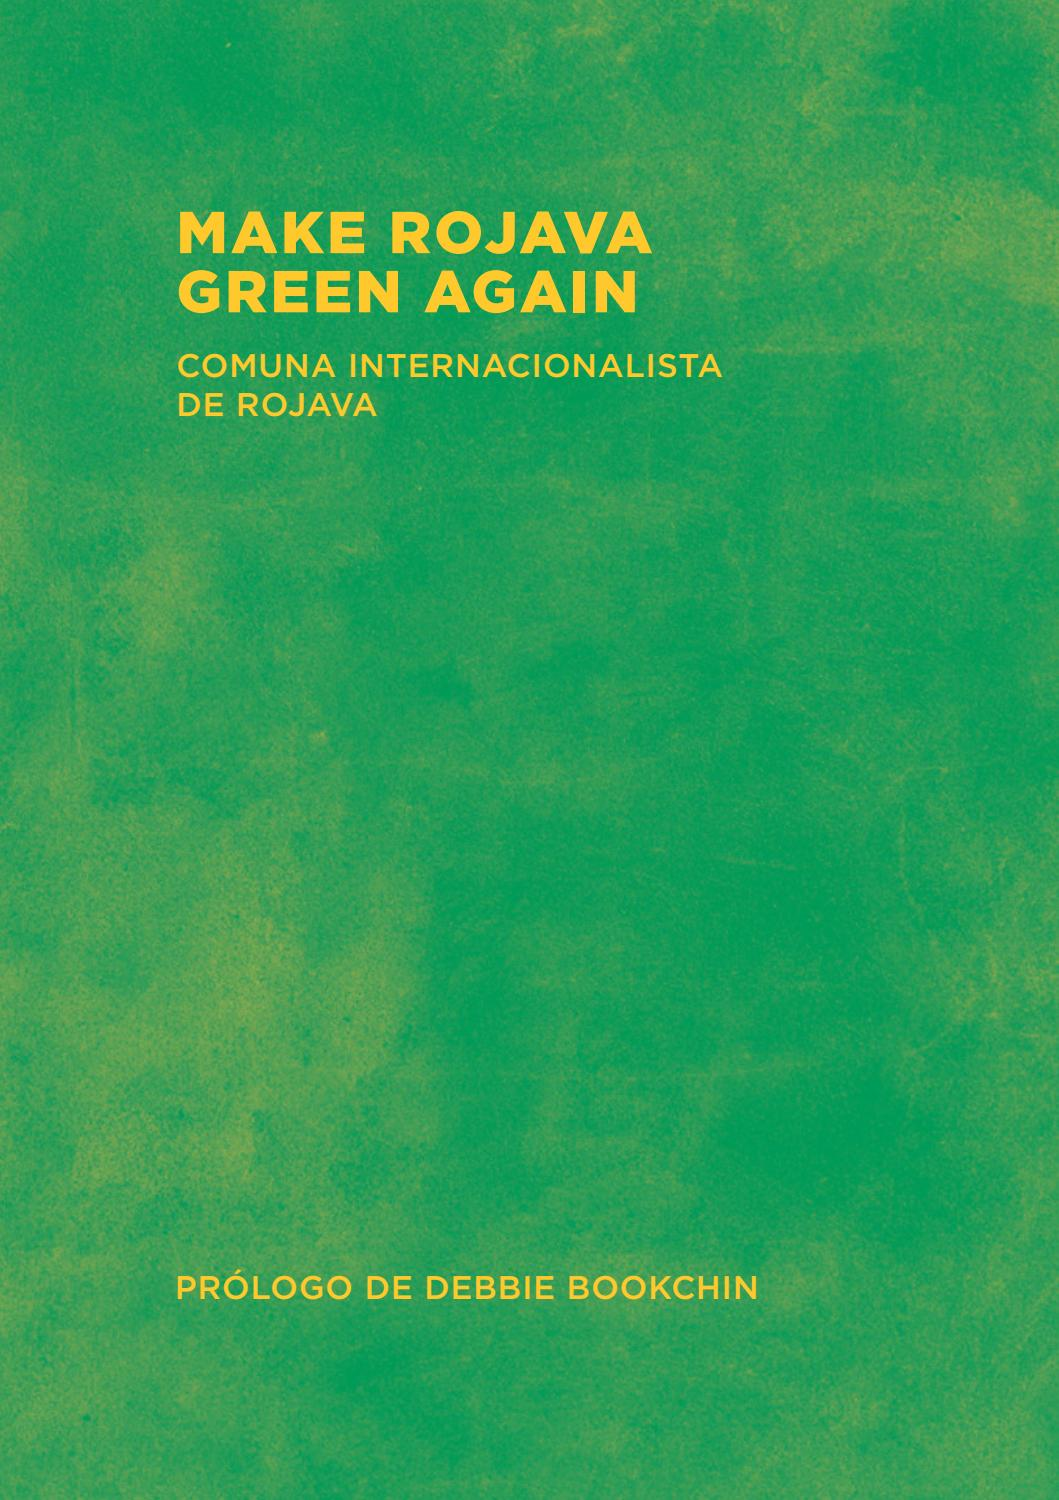 Make Rojava Green Again - VV. AA.